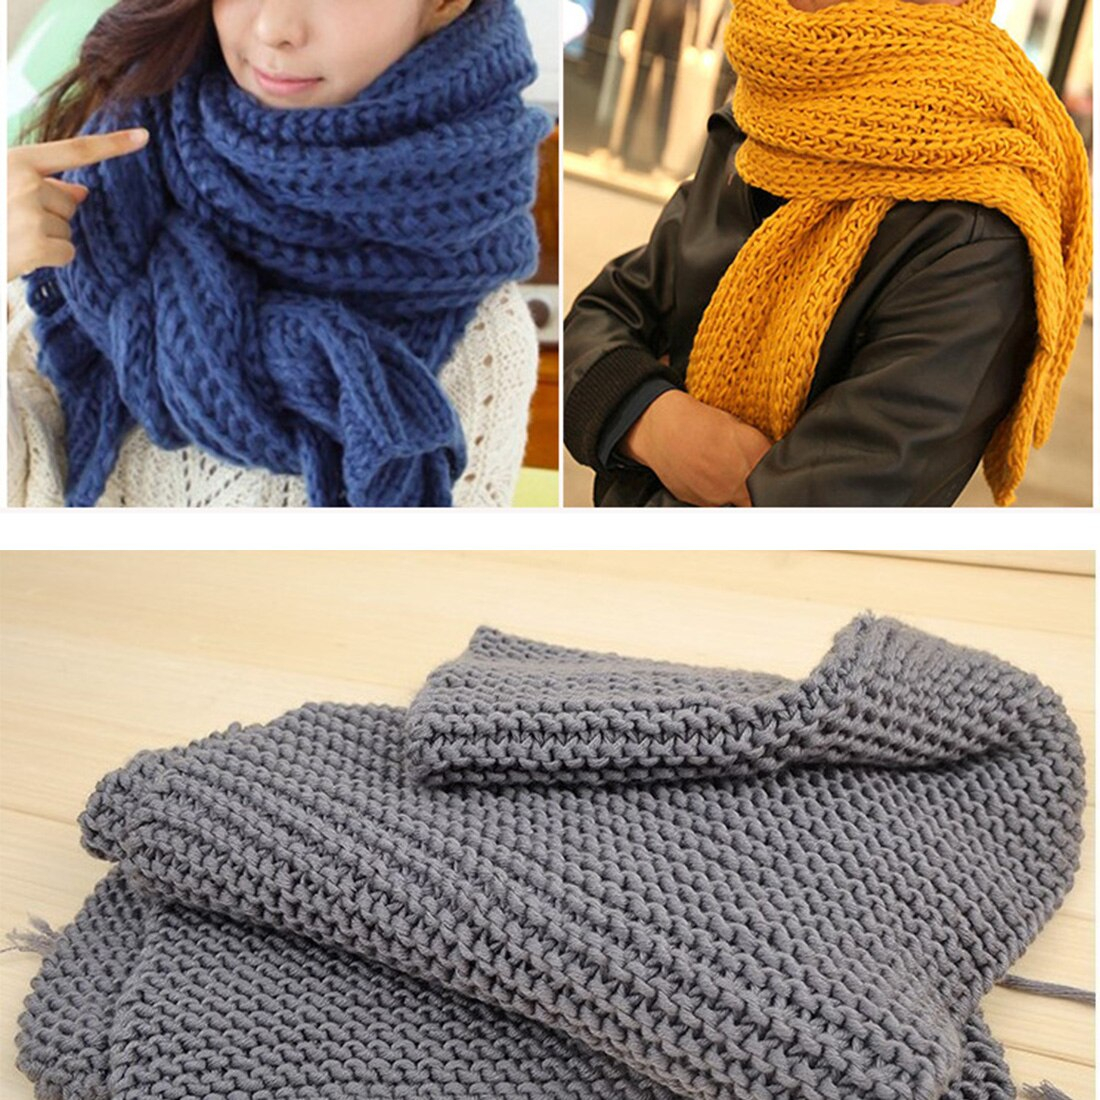 Hand Knit Scarf Pattern Us 58 18 Offsoft Cotton Ba Knitting Wool Yarn Milk Cotton Thick Yarn For Knitting Scarf Hand Knitting Crochet Yarn In Yarn From Home Garden On